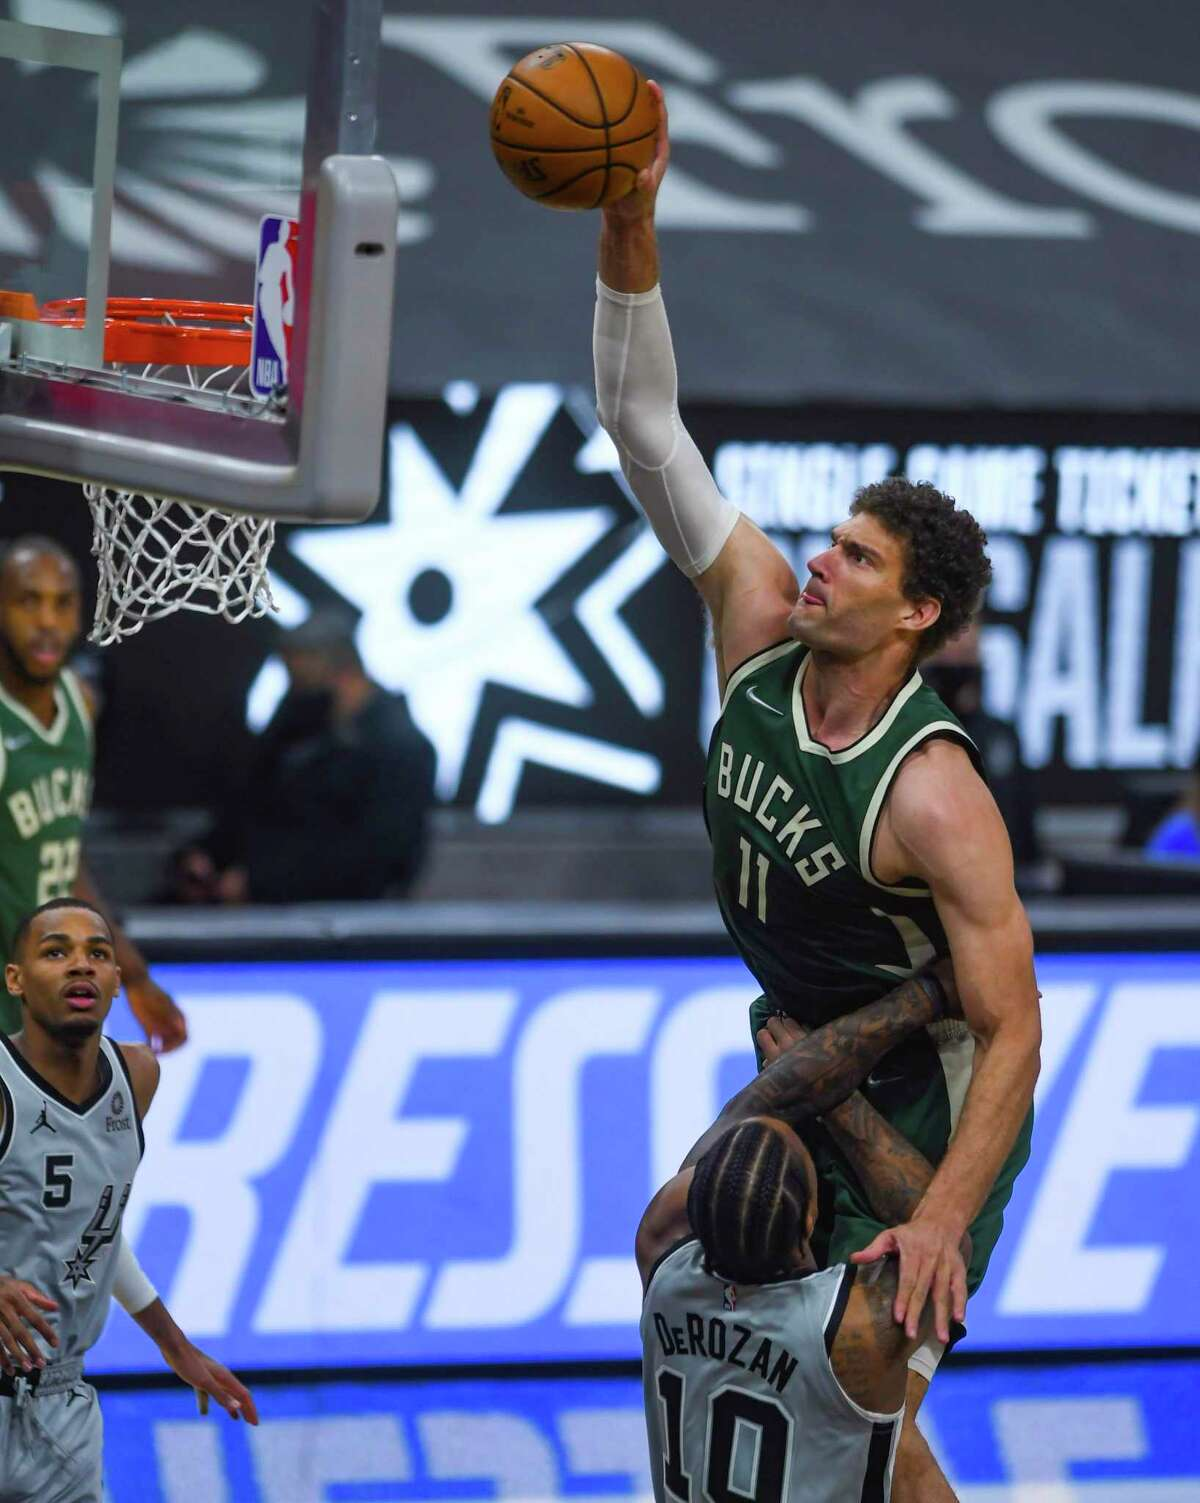 Brook Lopez of the Milwaukee Bucks dunks over DeMar DeRozan of the San Antonio Spurs during first-half NBA action in the AT&T Center on Monday, May 10, 2021.